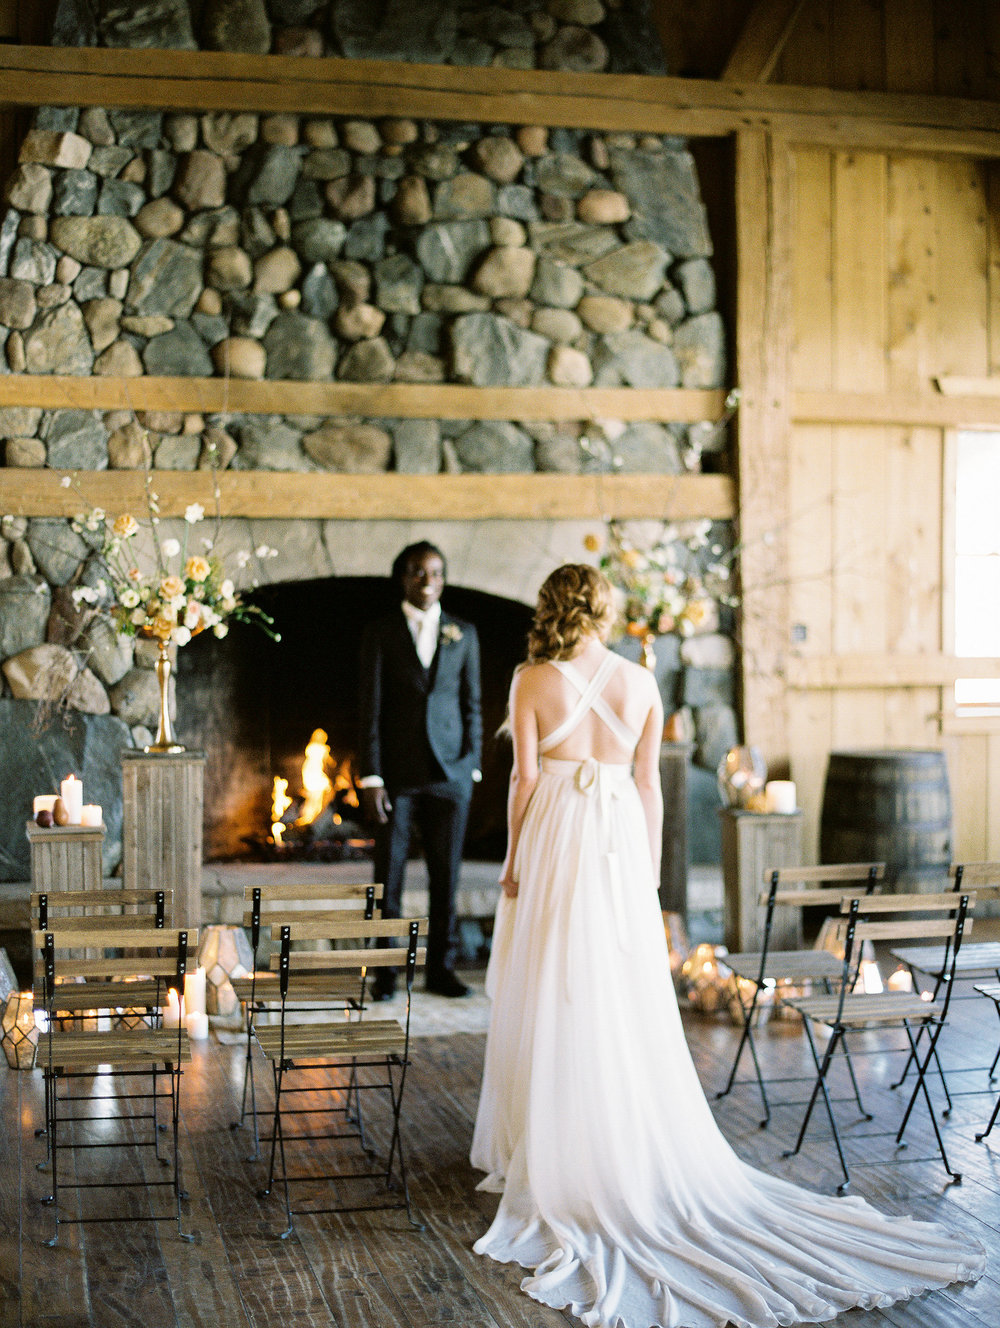 Dani-Cowan-Photography-Devils-Thumb-Ranch-Winter-Luxury-Wedding98.jpg